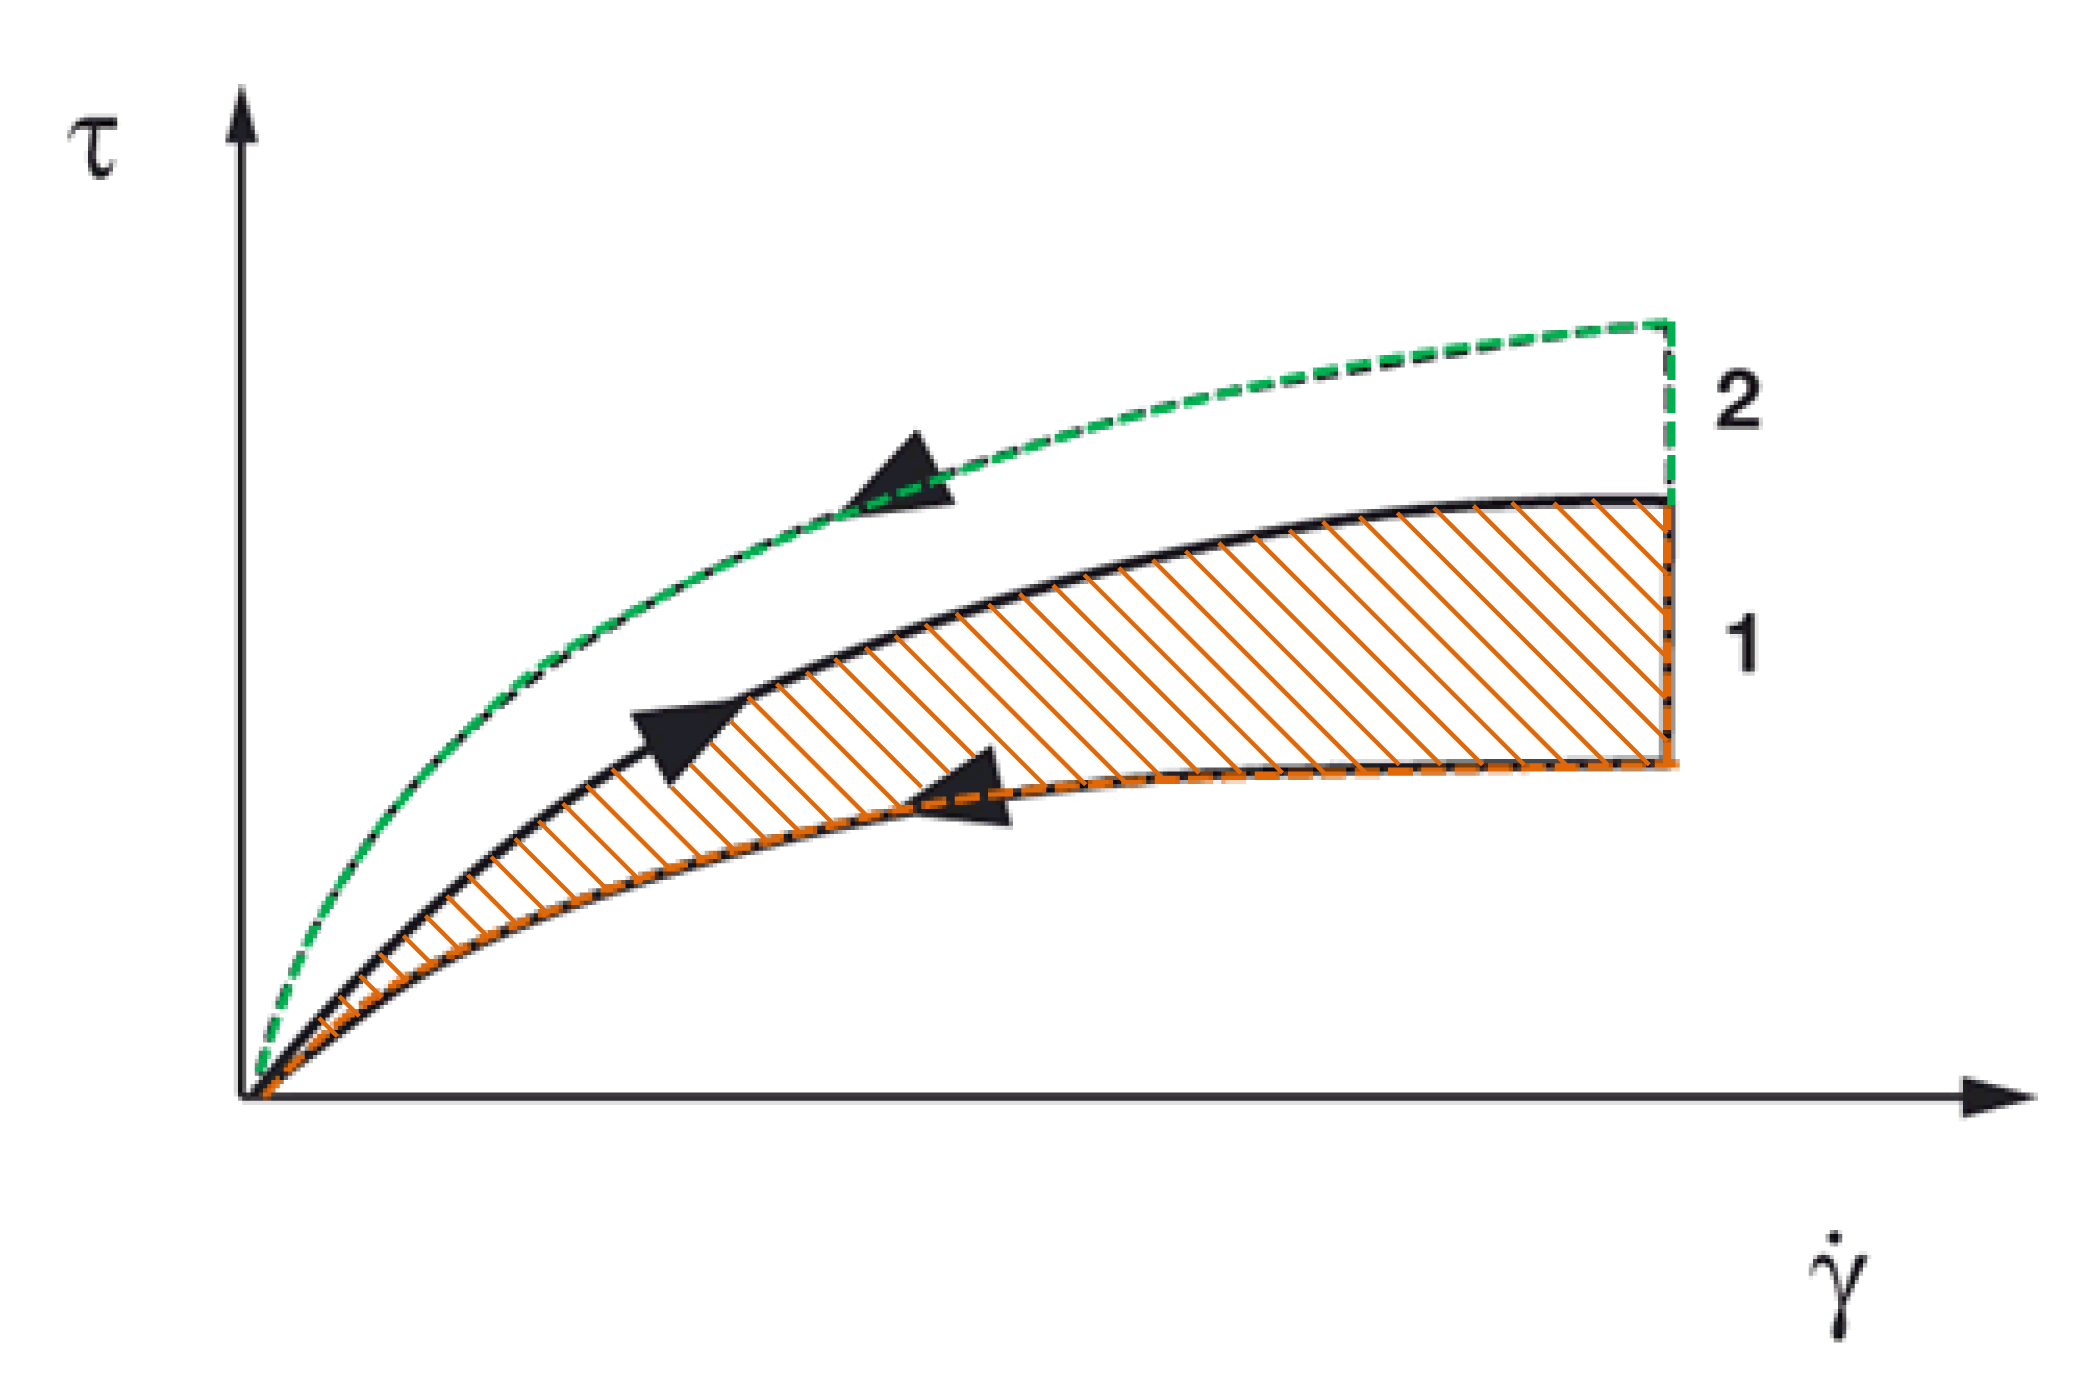 Figure 5: Flow curve showing the hysteresis area. 1 = indication for structural breakdown; 2 = indication for structural build-up, Ԏ = shear stress, y ̇ = shear rate